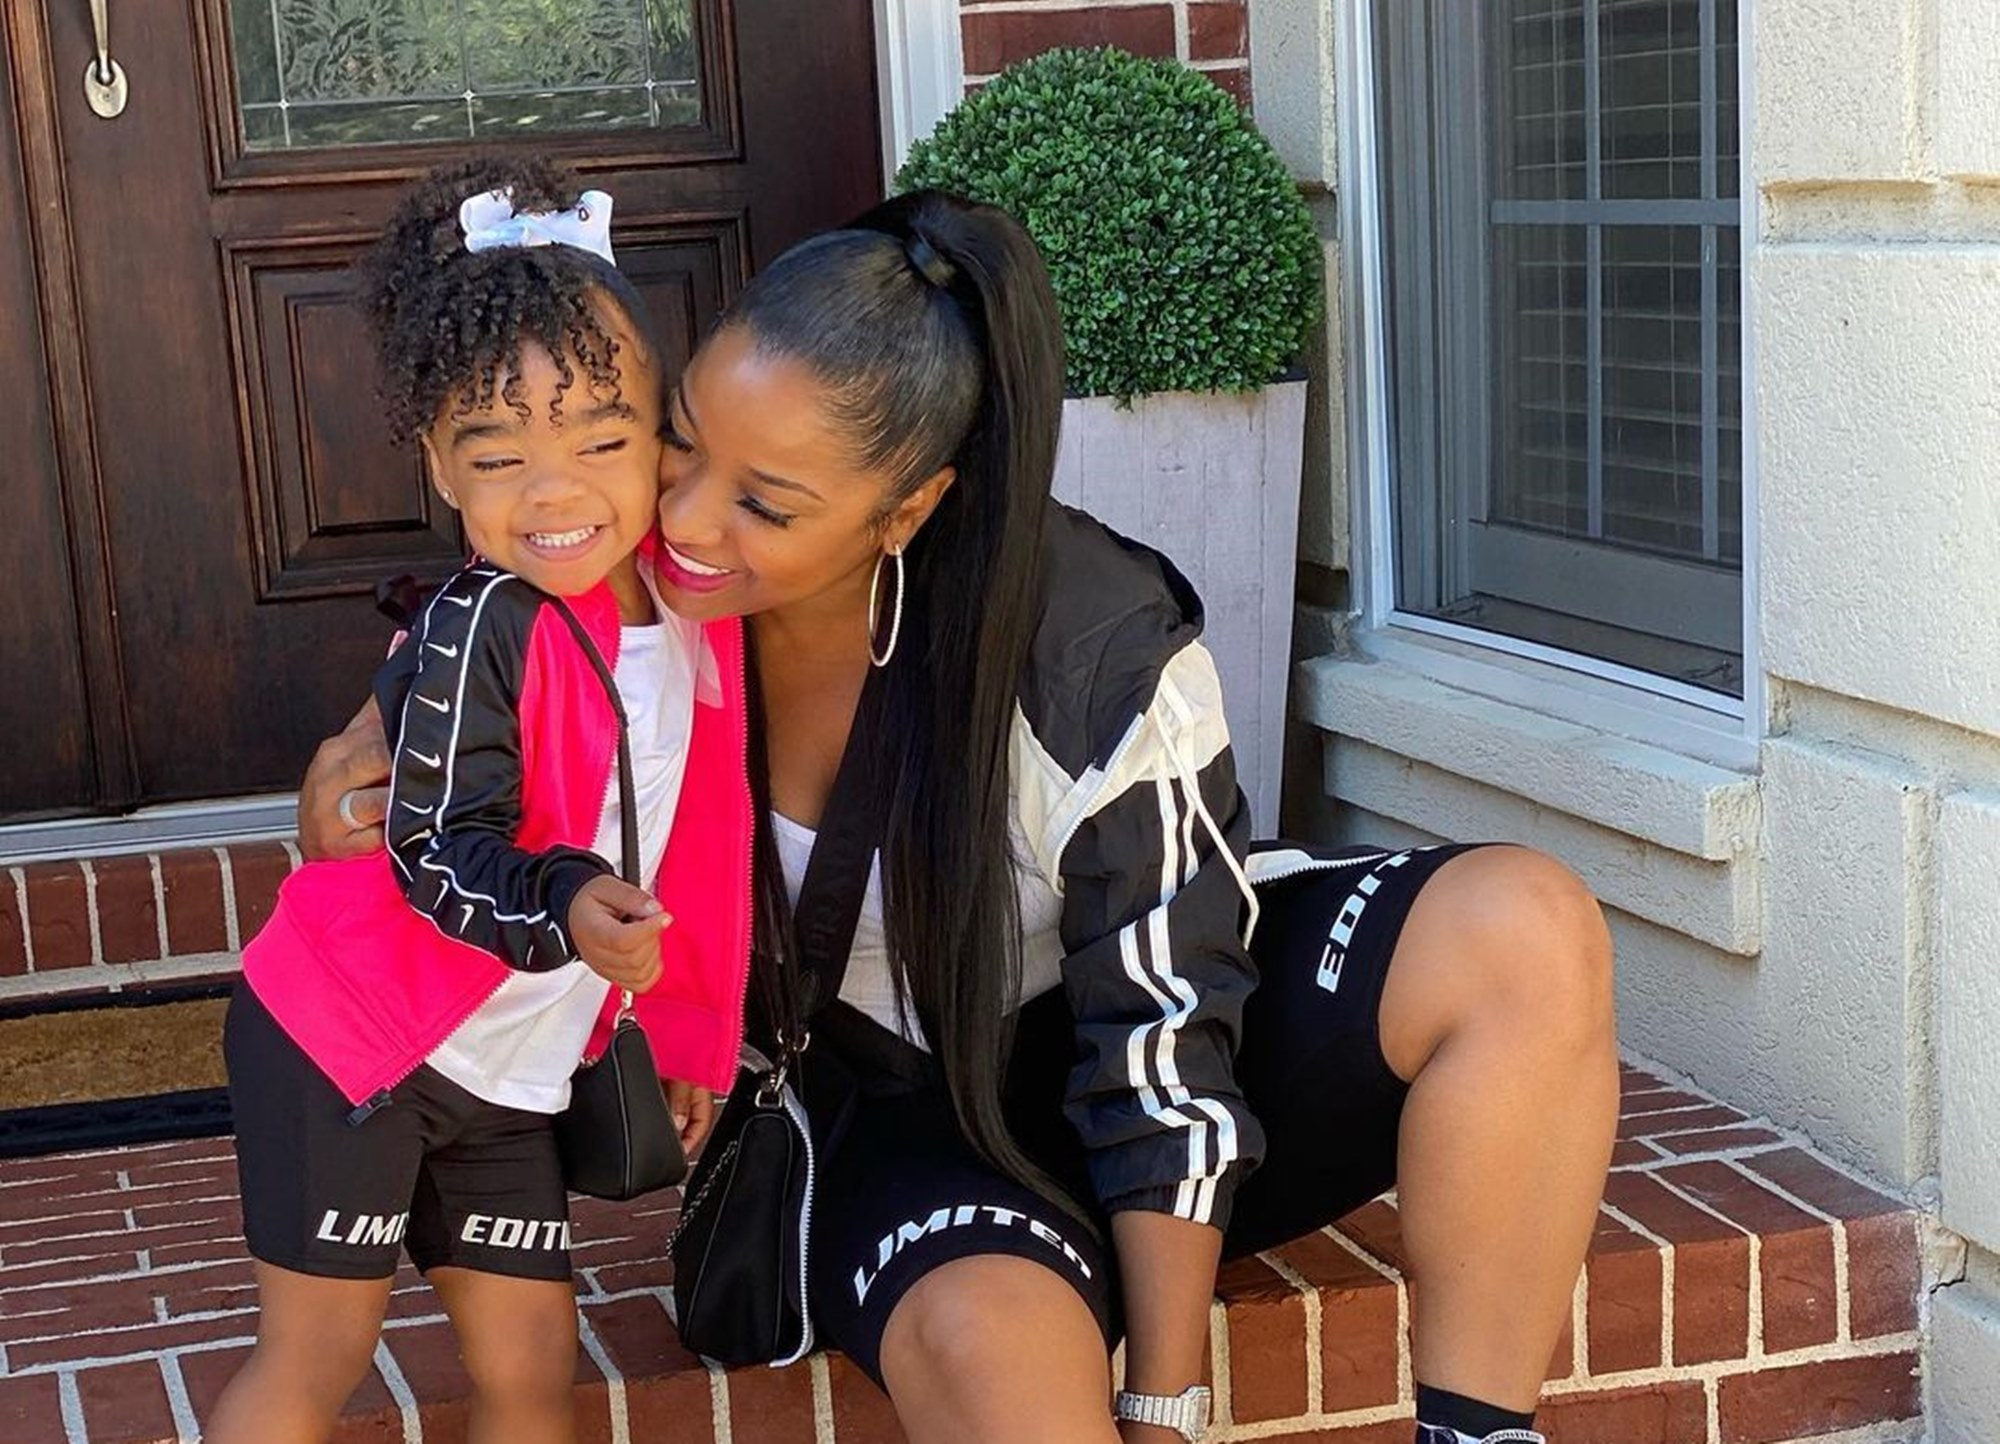 """toya-johnson-posts-cute-photos-with-daughter-reign-rushing-fans-defend-duo-after-critics-slammed-childs-looks"""